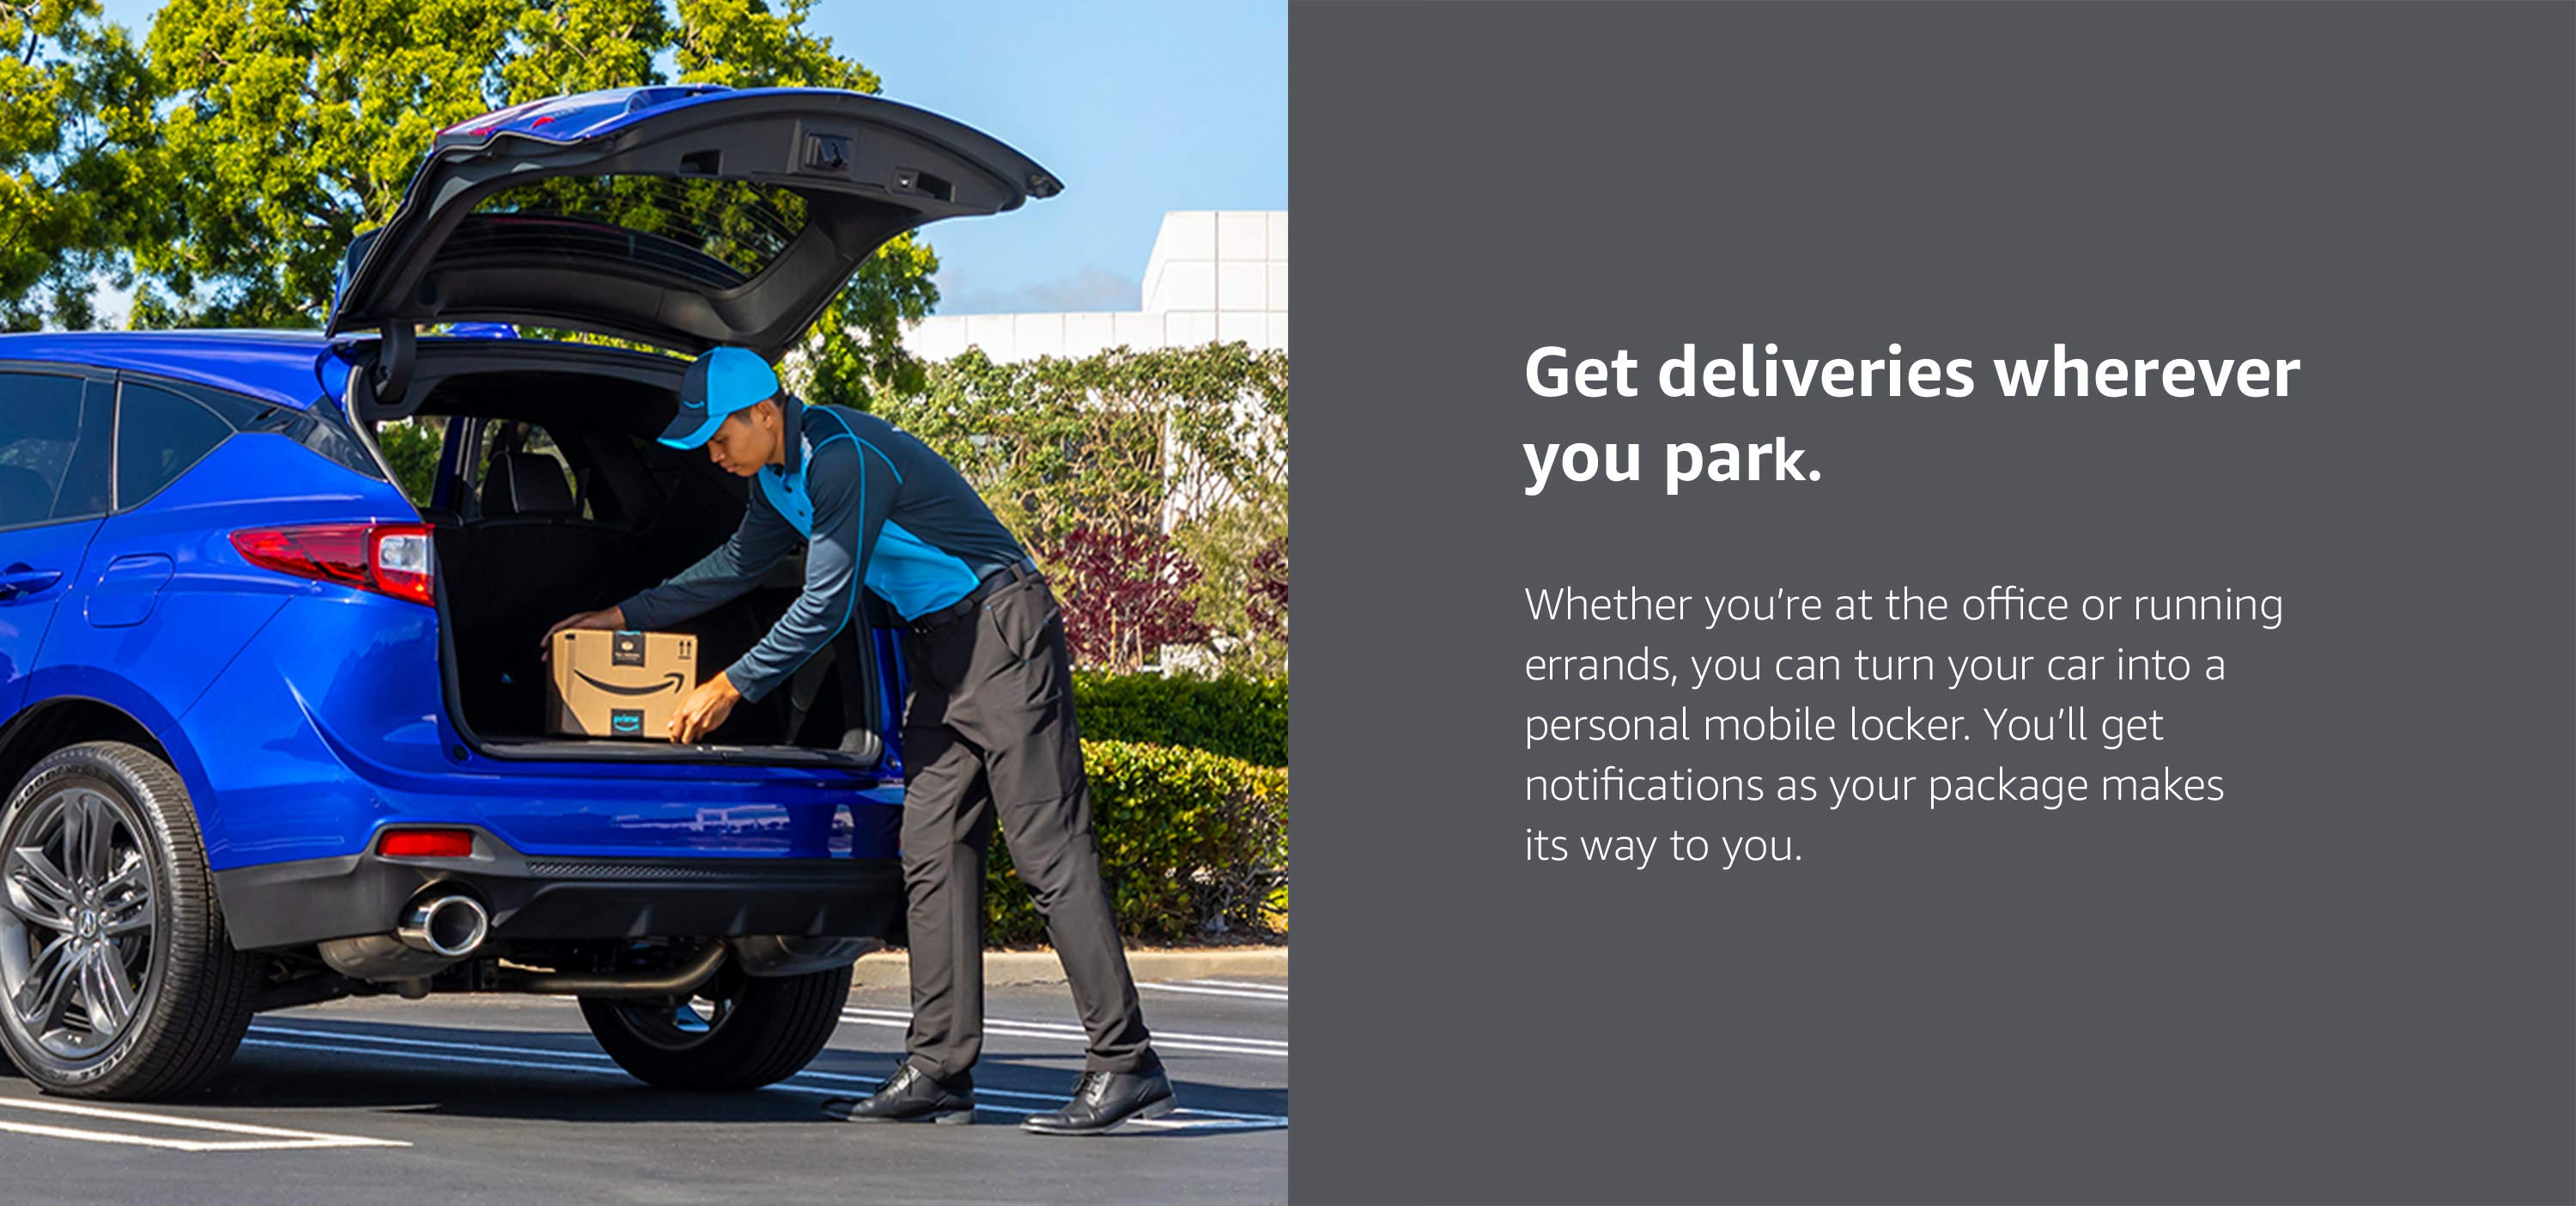 Get deliveries wherever you park.